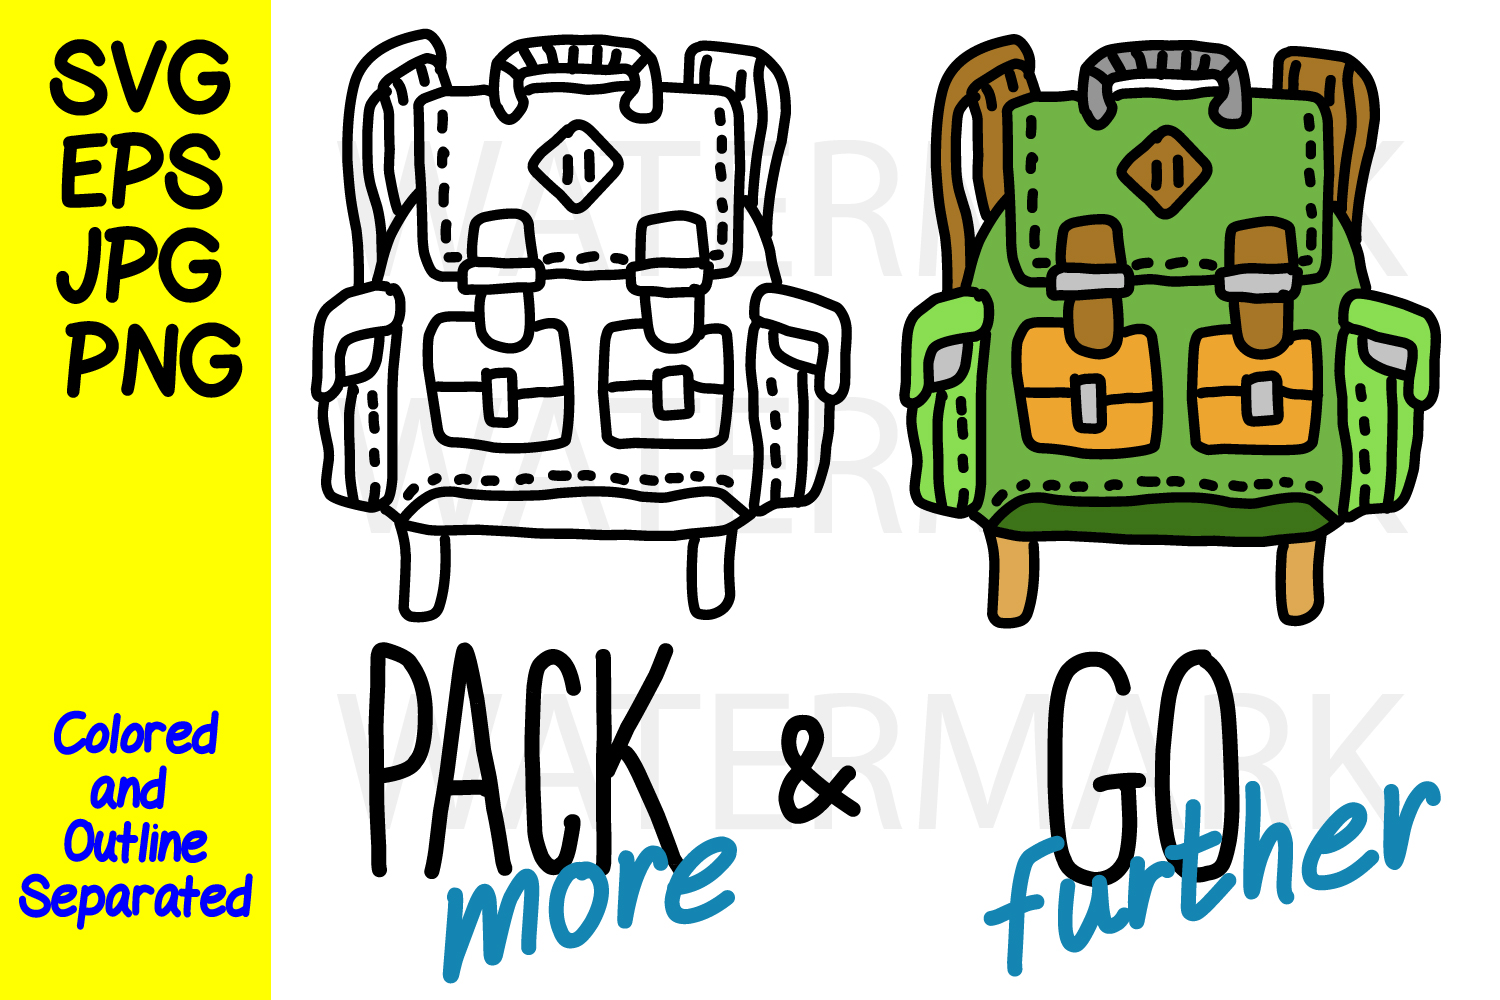 Pack More and Go Further - SVG-EPS-JPG-PNG example image 1